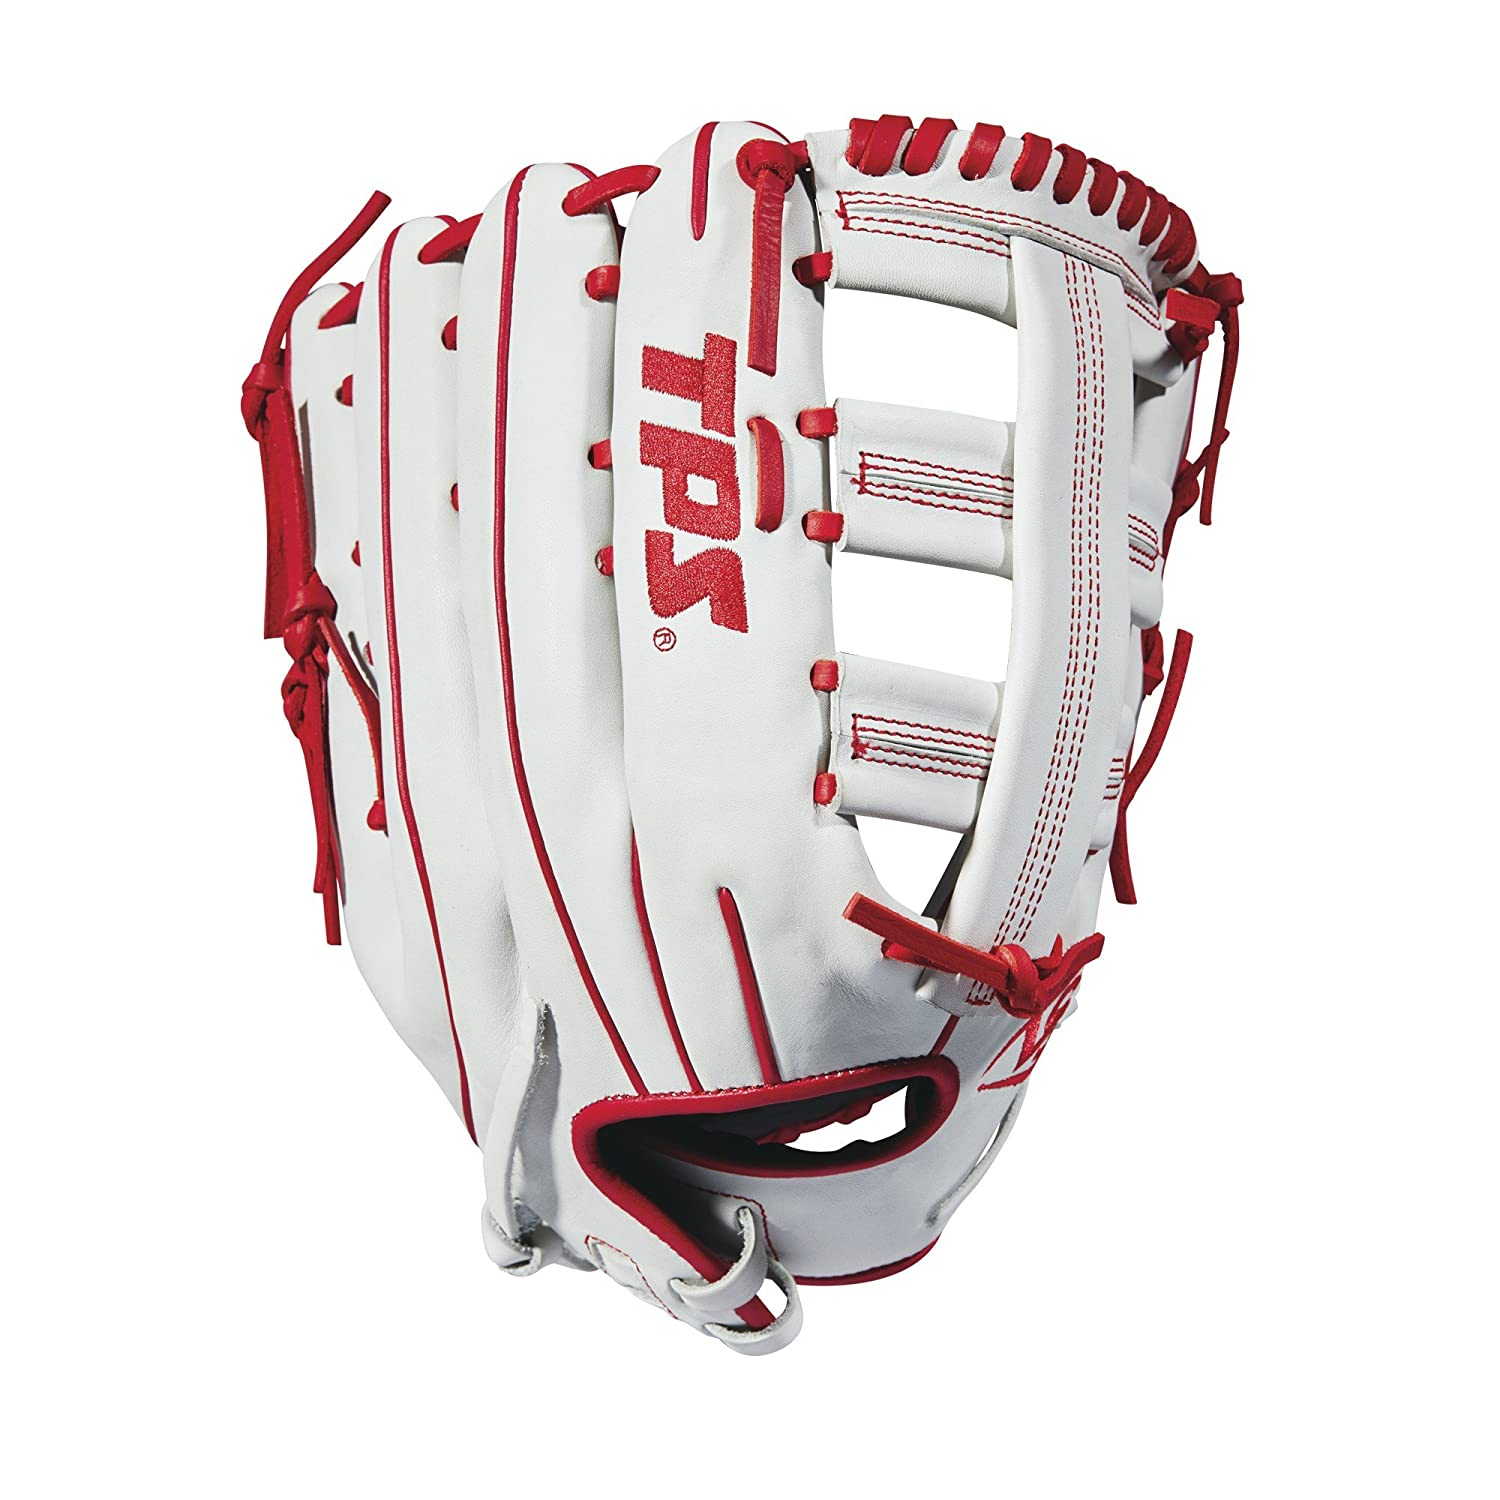 Louisville Slugger 2018 TPS Slowpitchソフトボールグローブ – Right Hand Throwホワイト/レッド、13.5